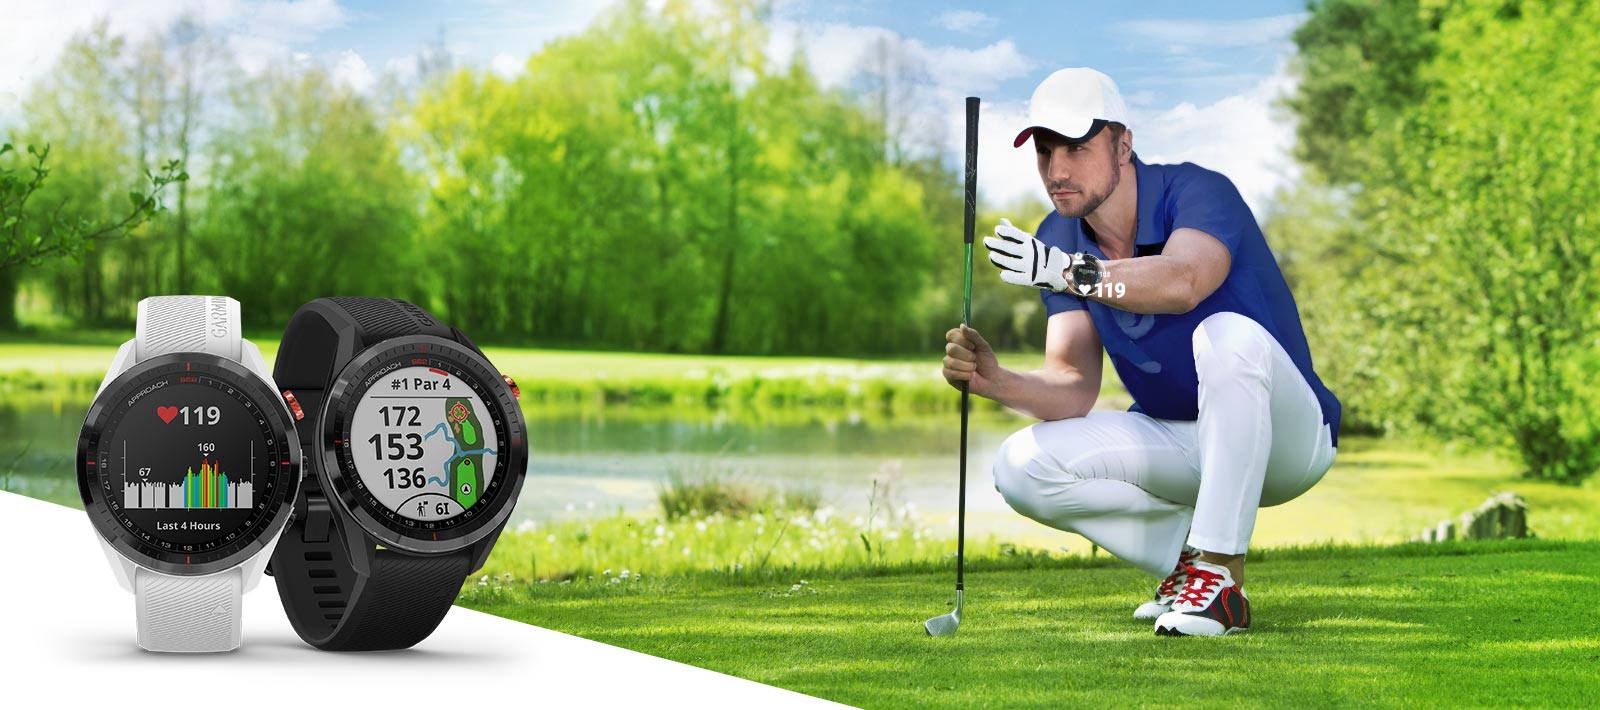 Approach S62 - Premium GPS Golf Watch